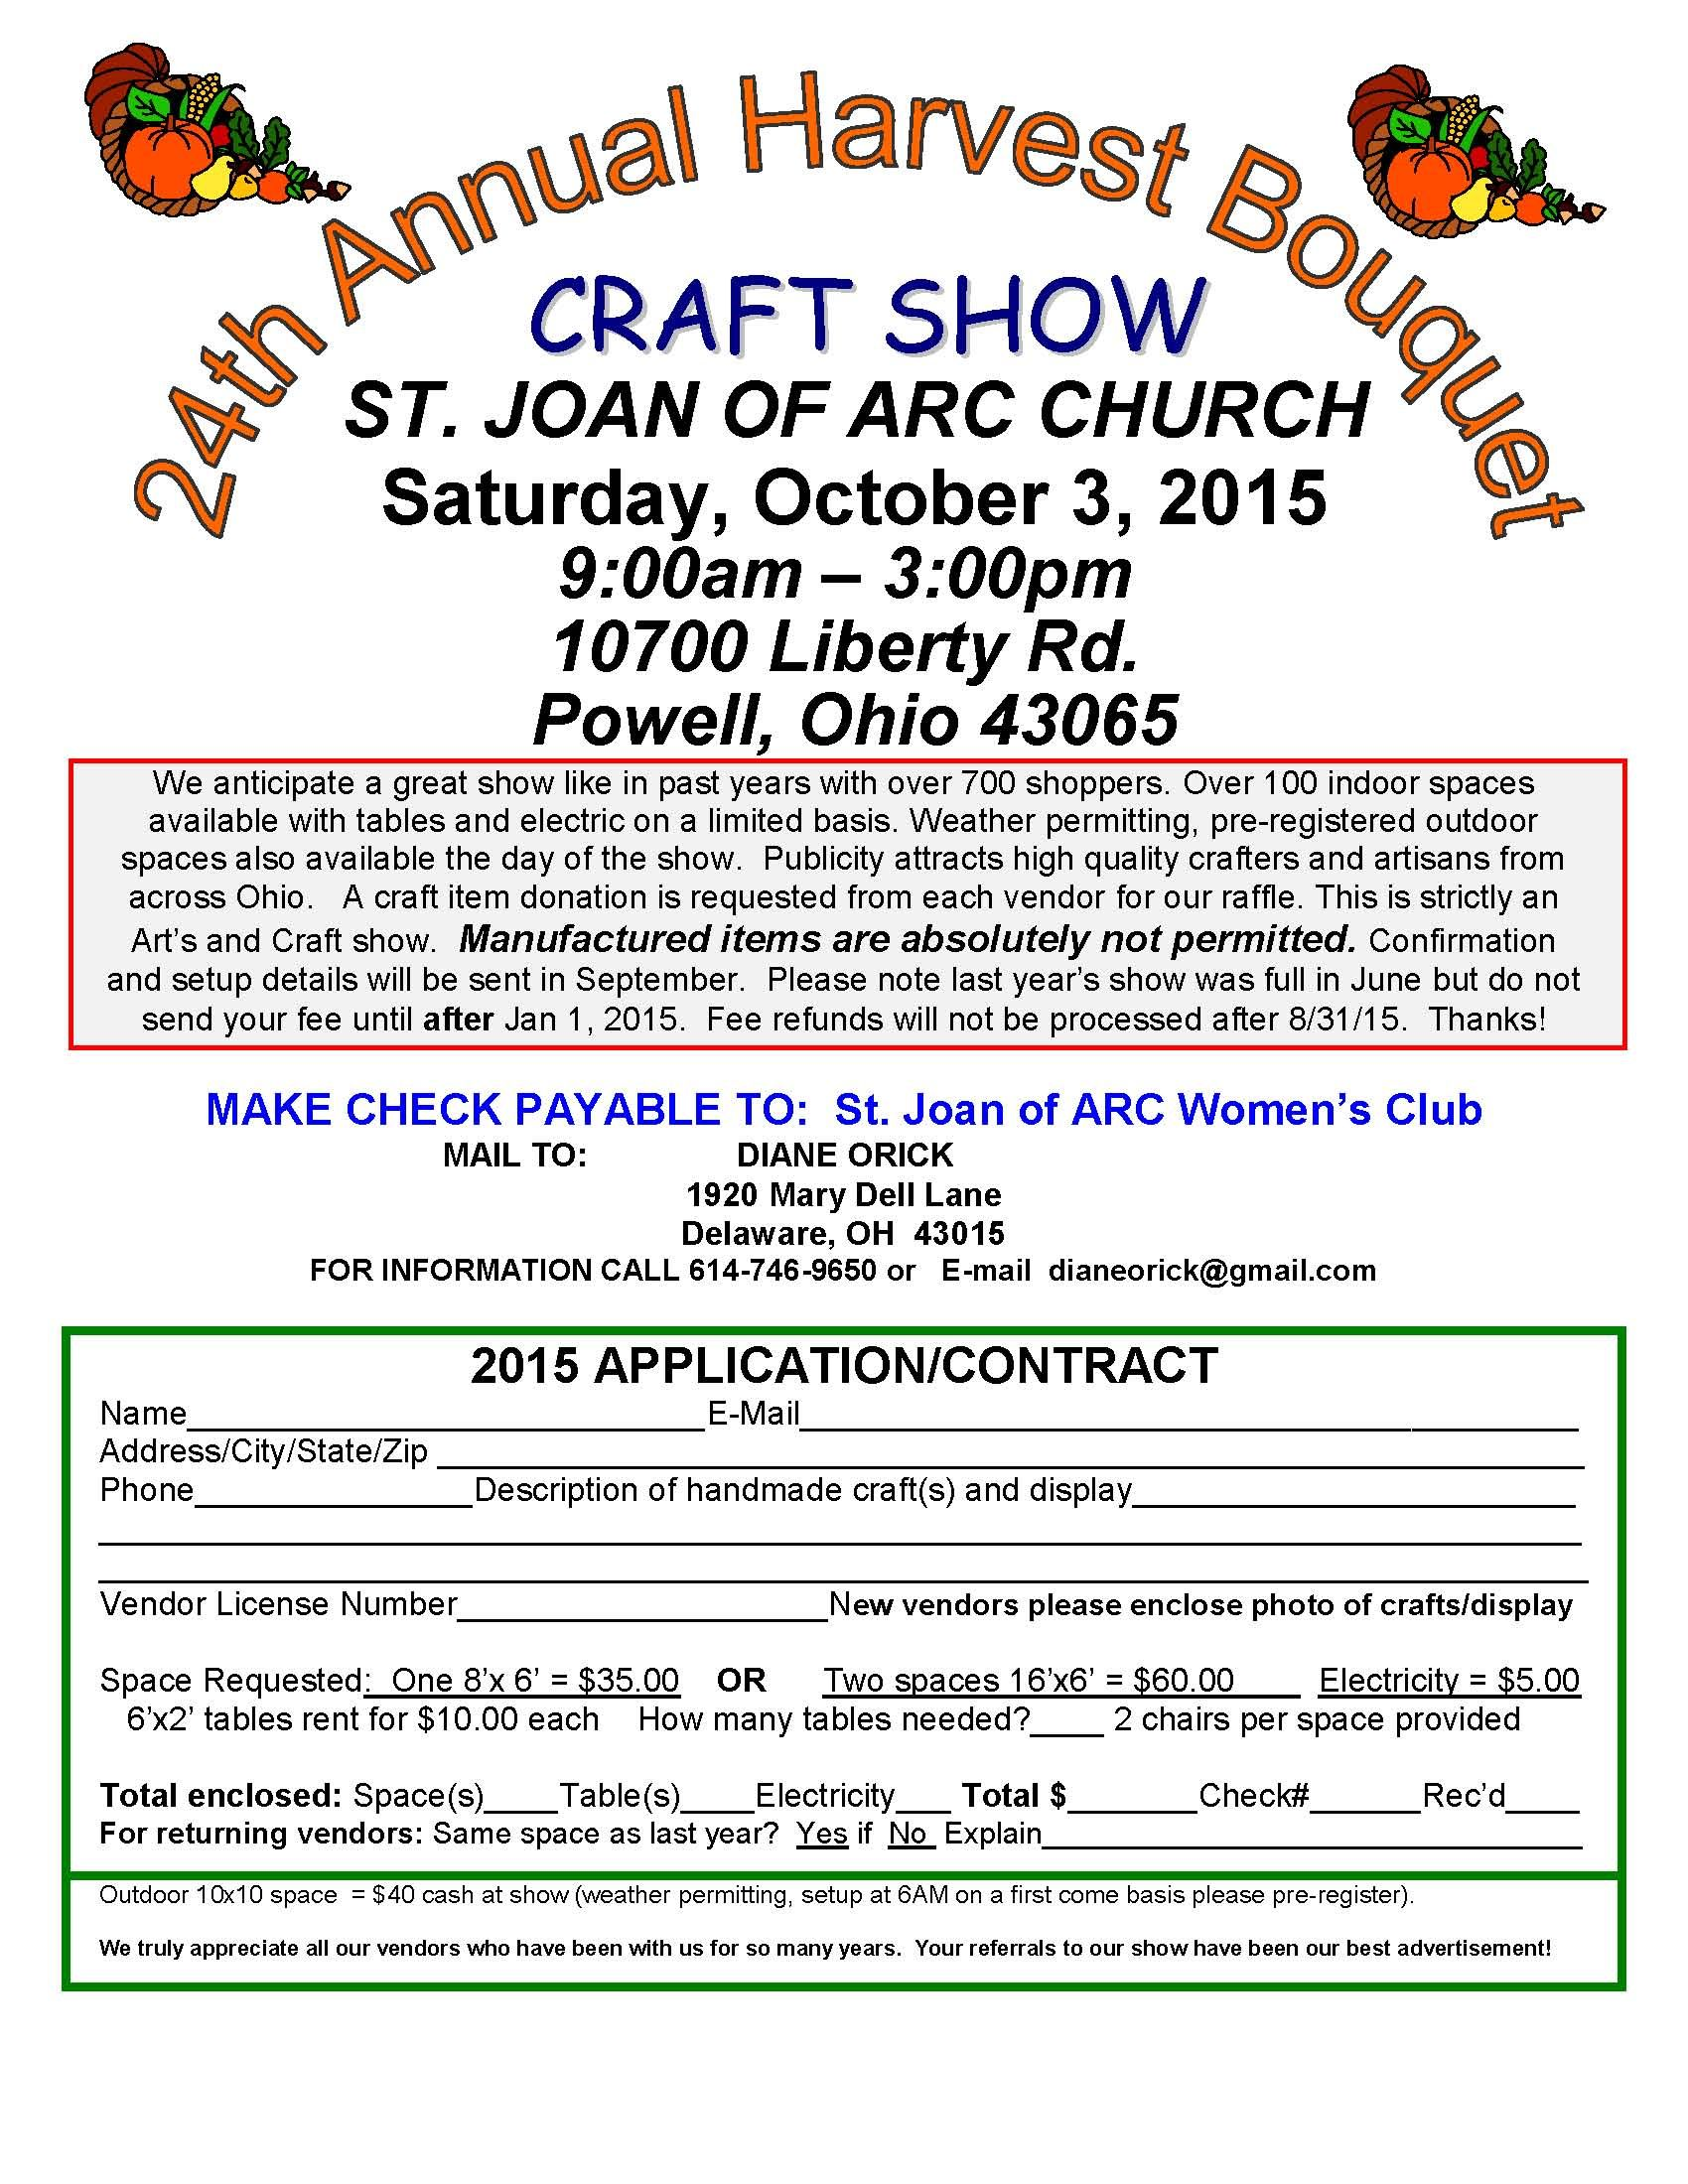 Craft Show Vendor App   Pop Up Shop    Craft